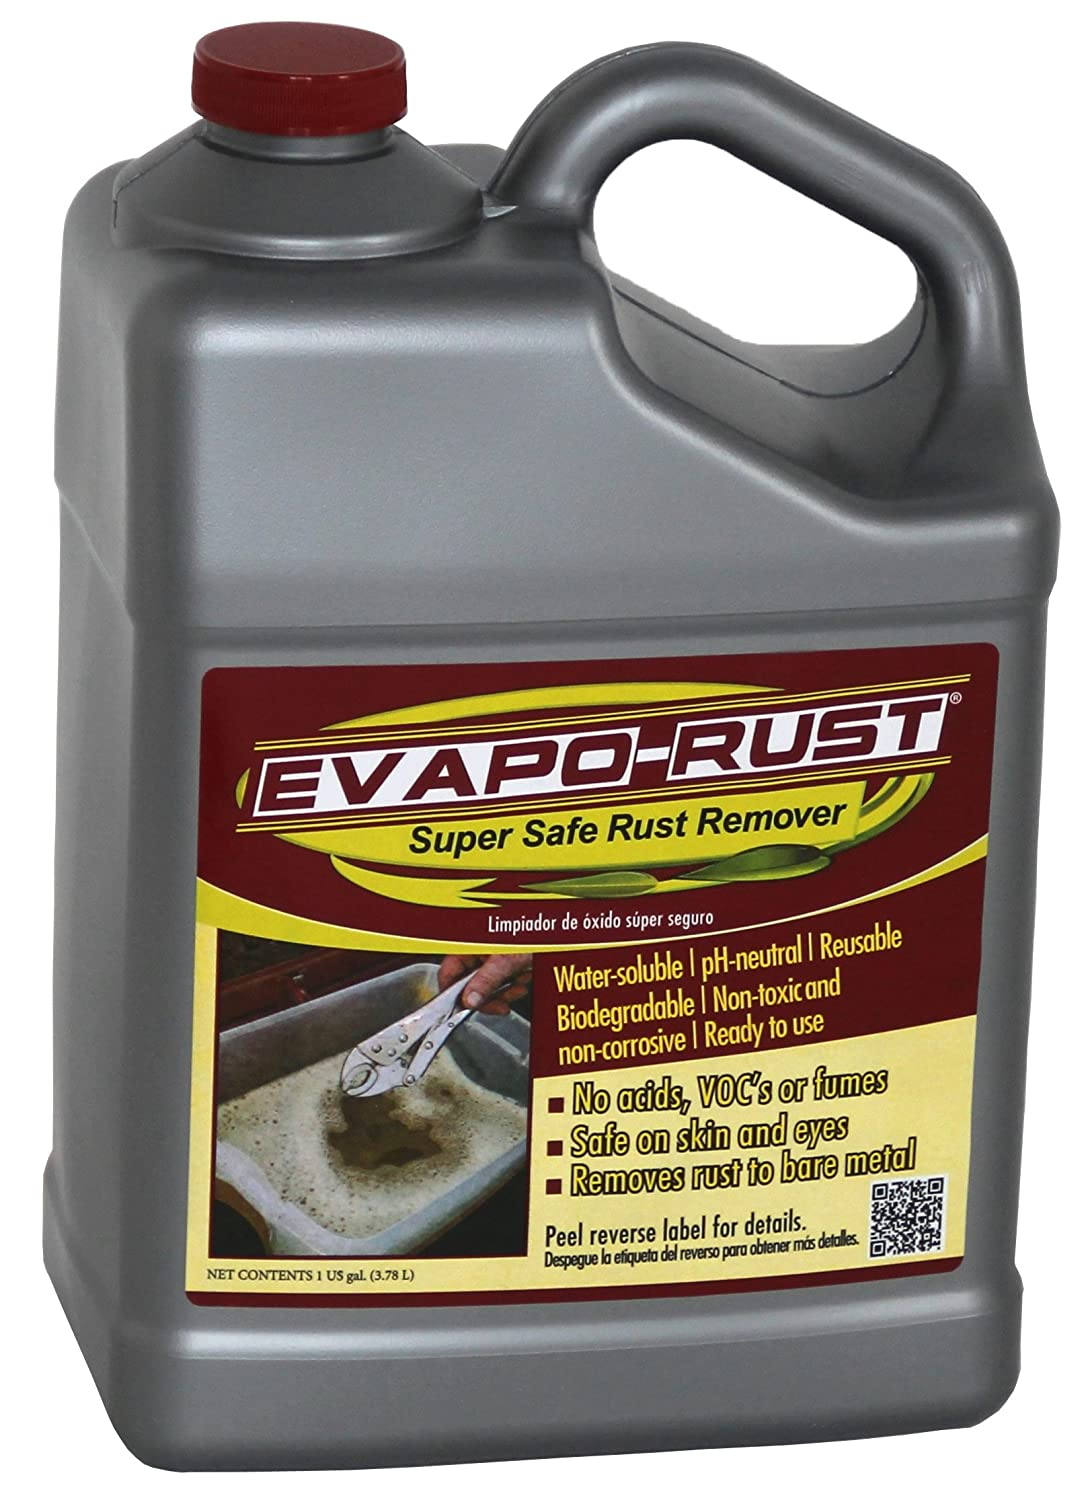 ハリスInternational Laboratories I er012 1-gallon evapo-rust non-hazardous Rust Remover 1 ER012 B00GRSOGJU